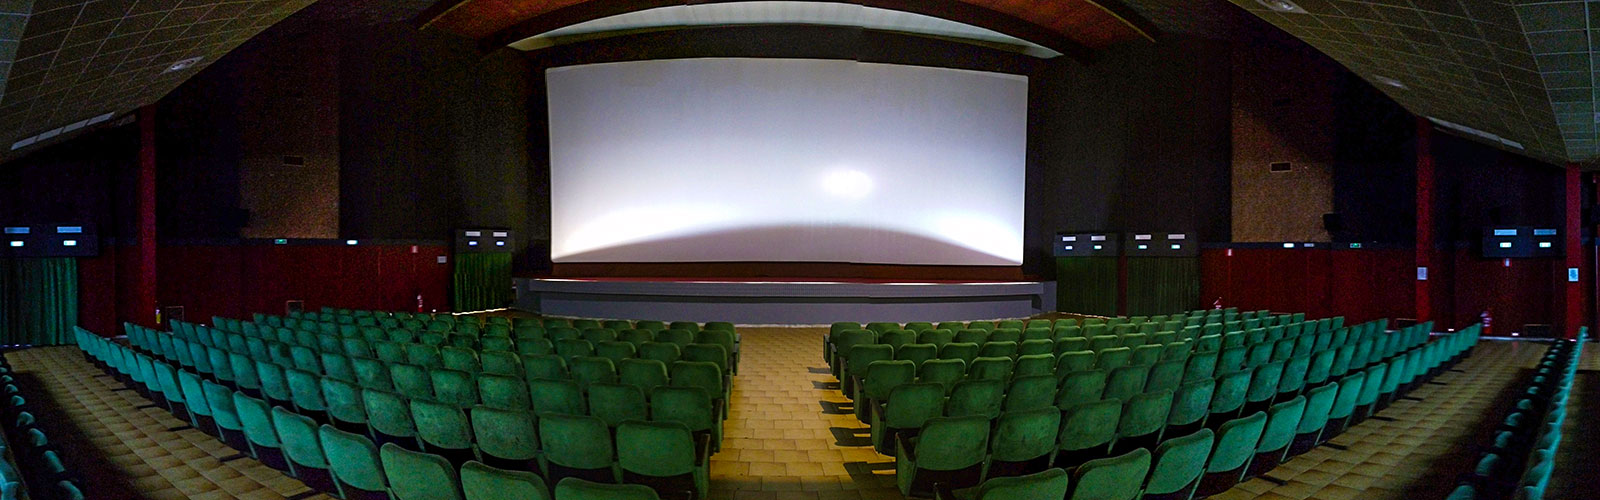 Multisala Supercinema